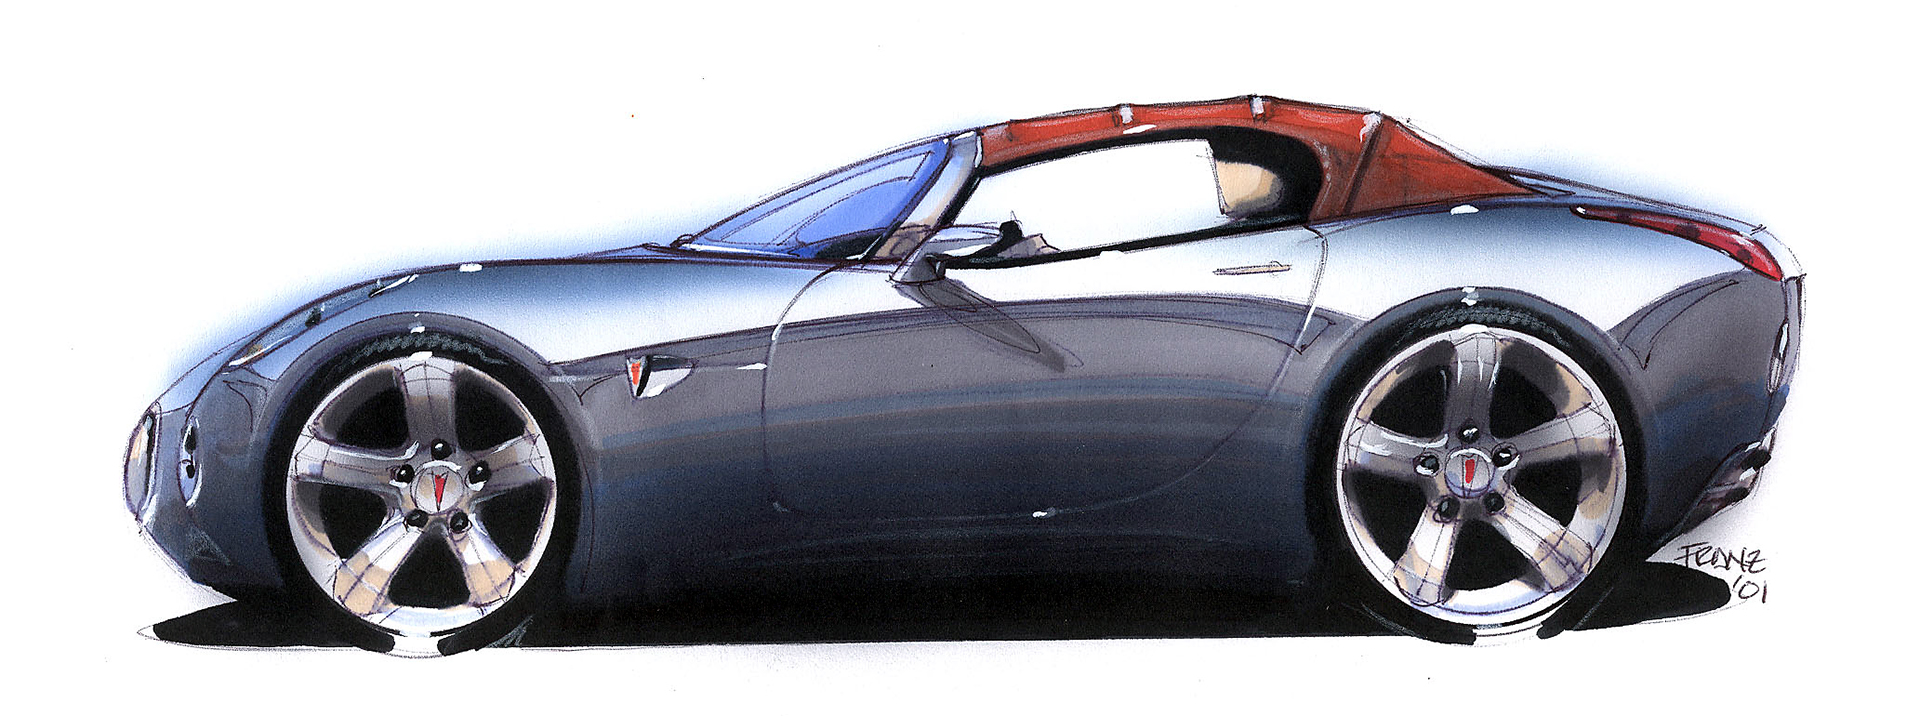 2002 pontiac solstice side profile watercolor design drawing